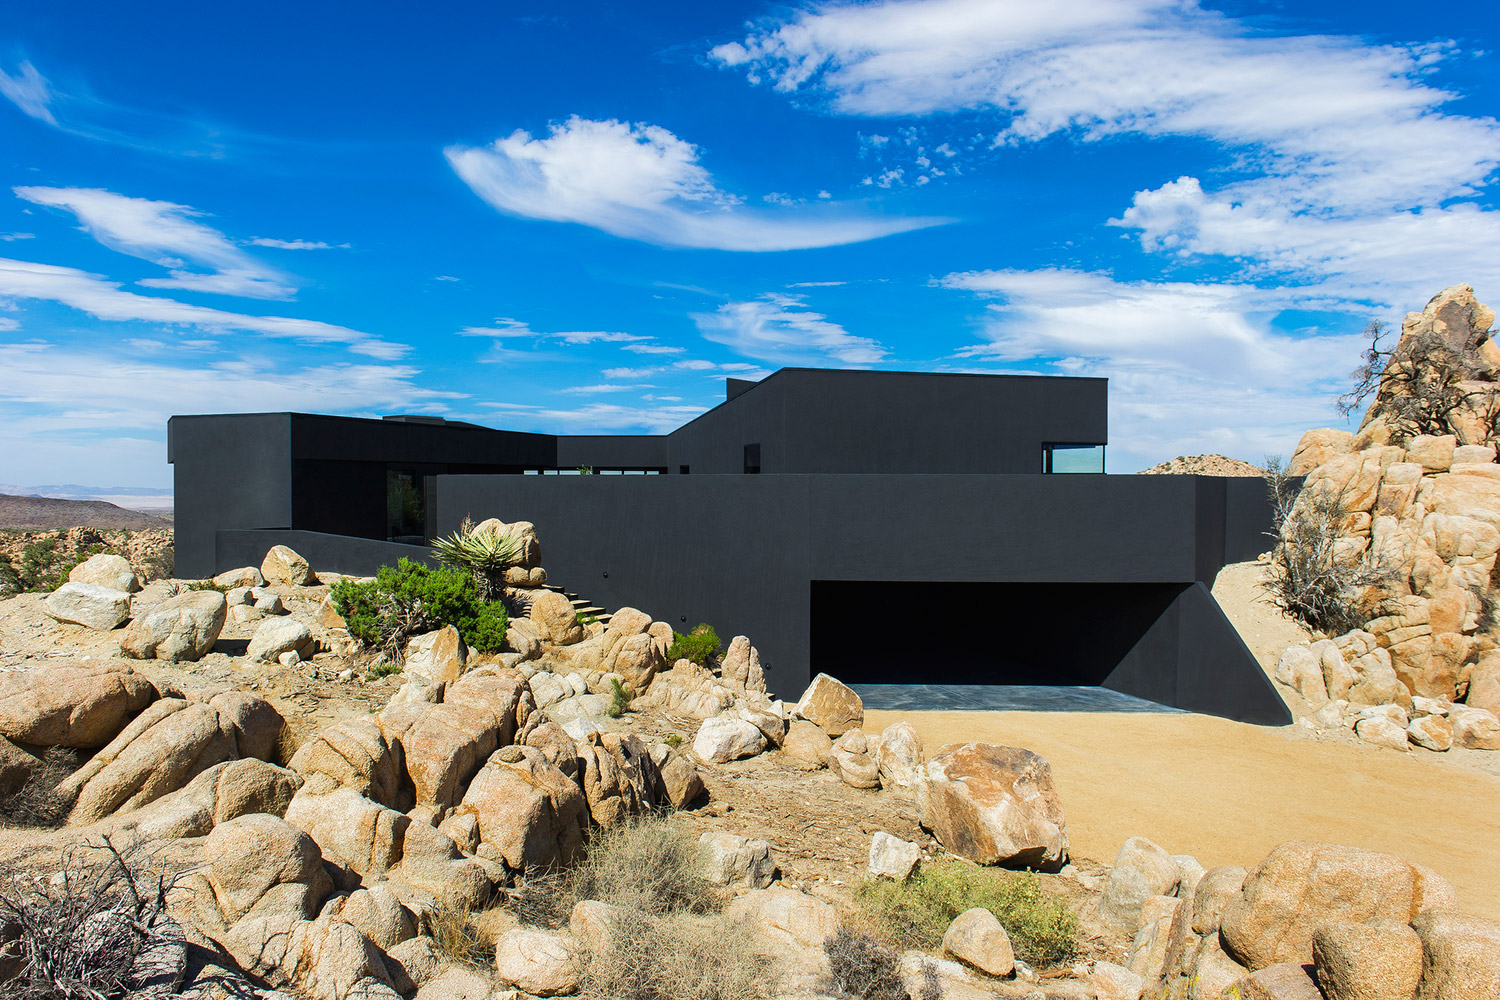 black-desert-house-mojave-04